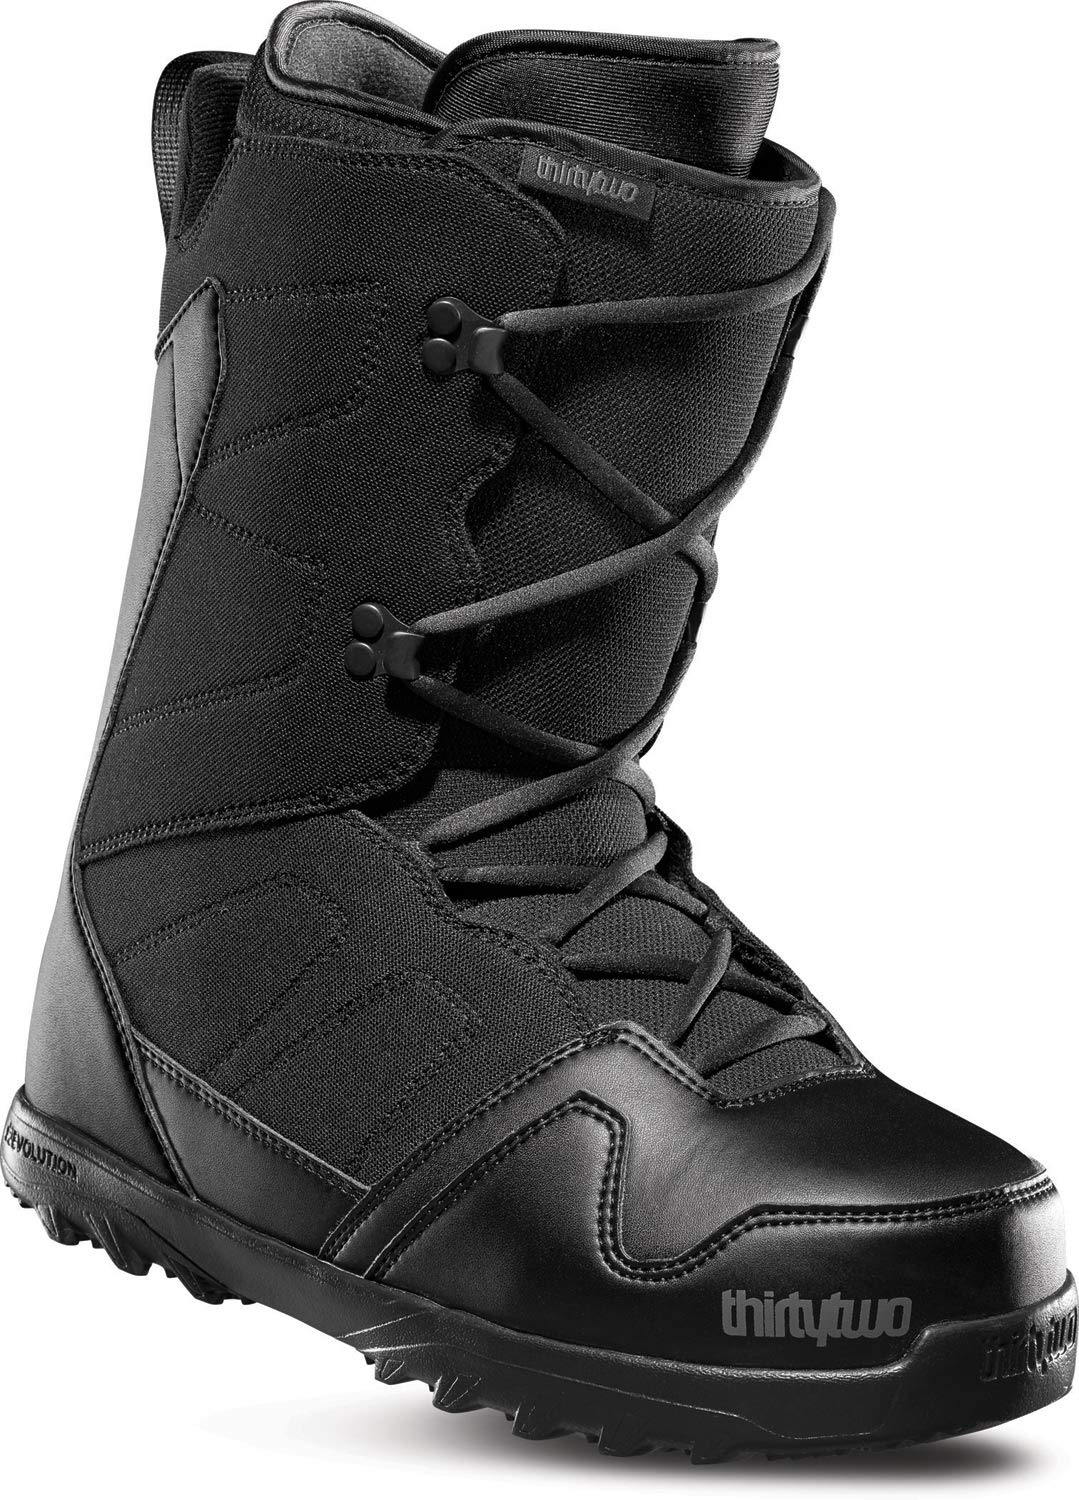 ThirtyTwo 32 Exit '18 Snowboard Boots Men's